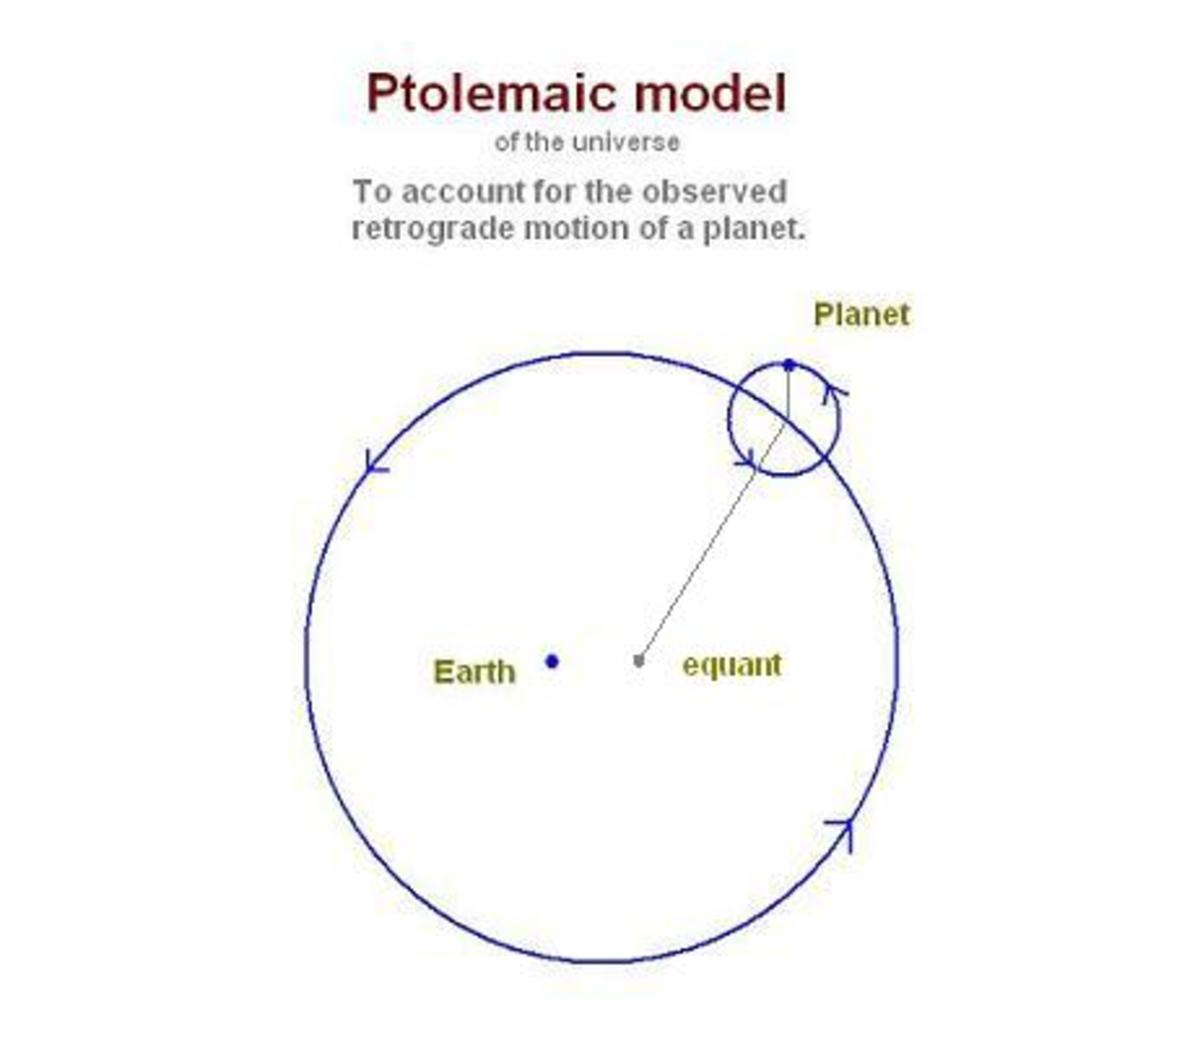 The retrograde observations of the planets were difficult to explain until Ptolemy developed the concept of using an equant and epicycle.